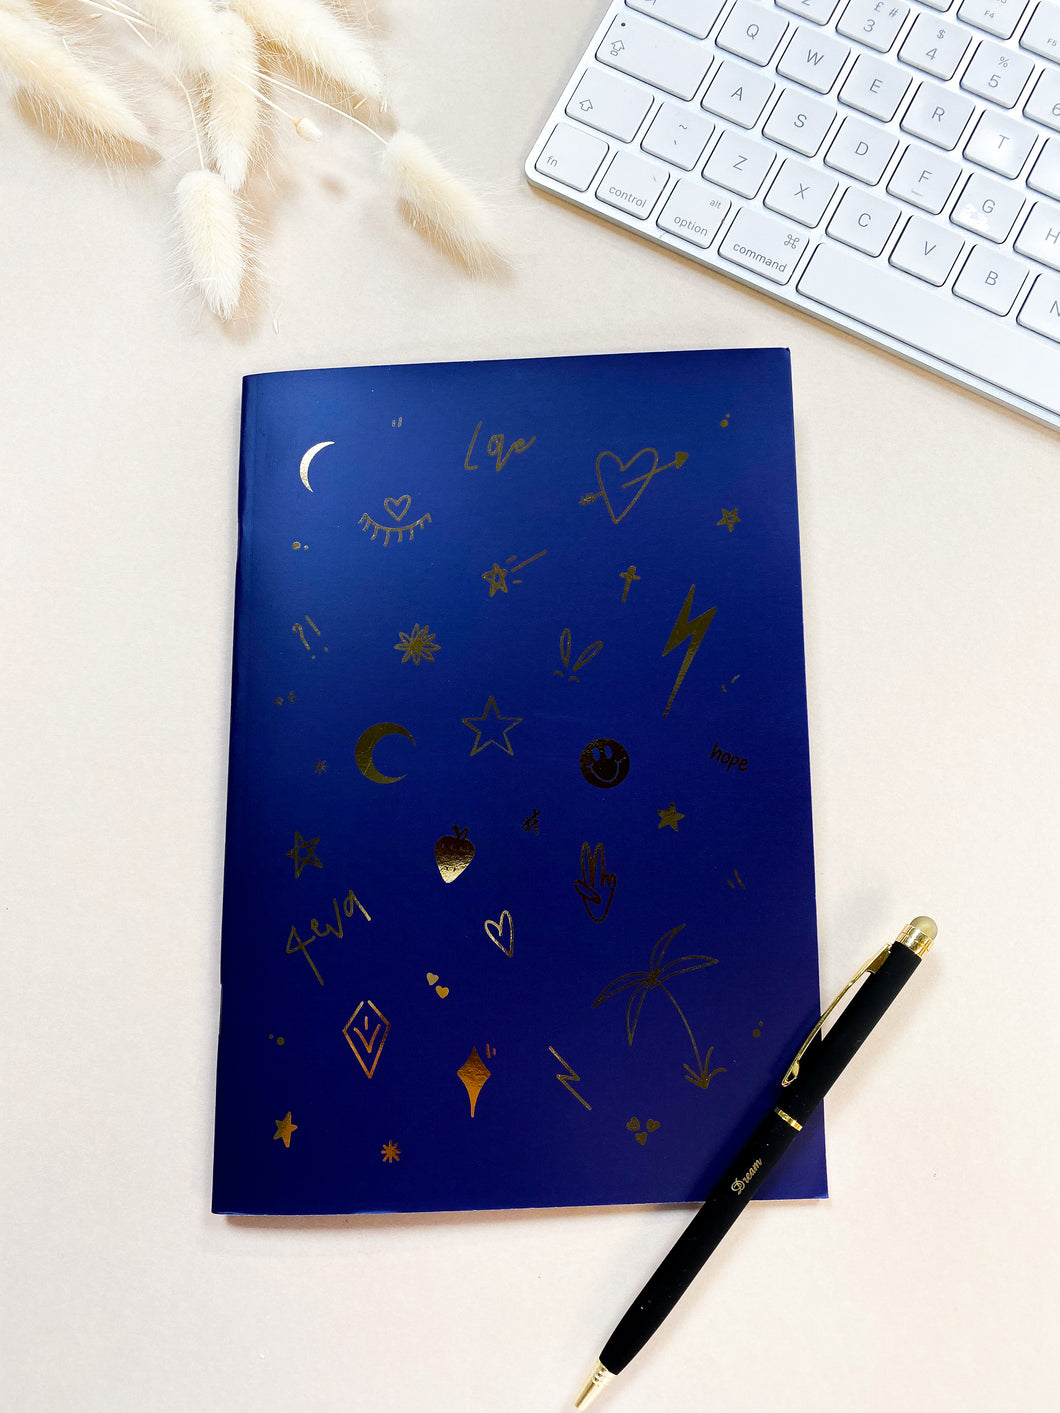 Blue Foiled Illustrated Notebook